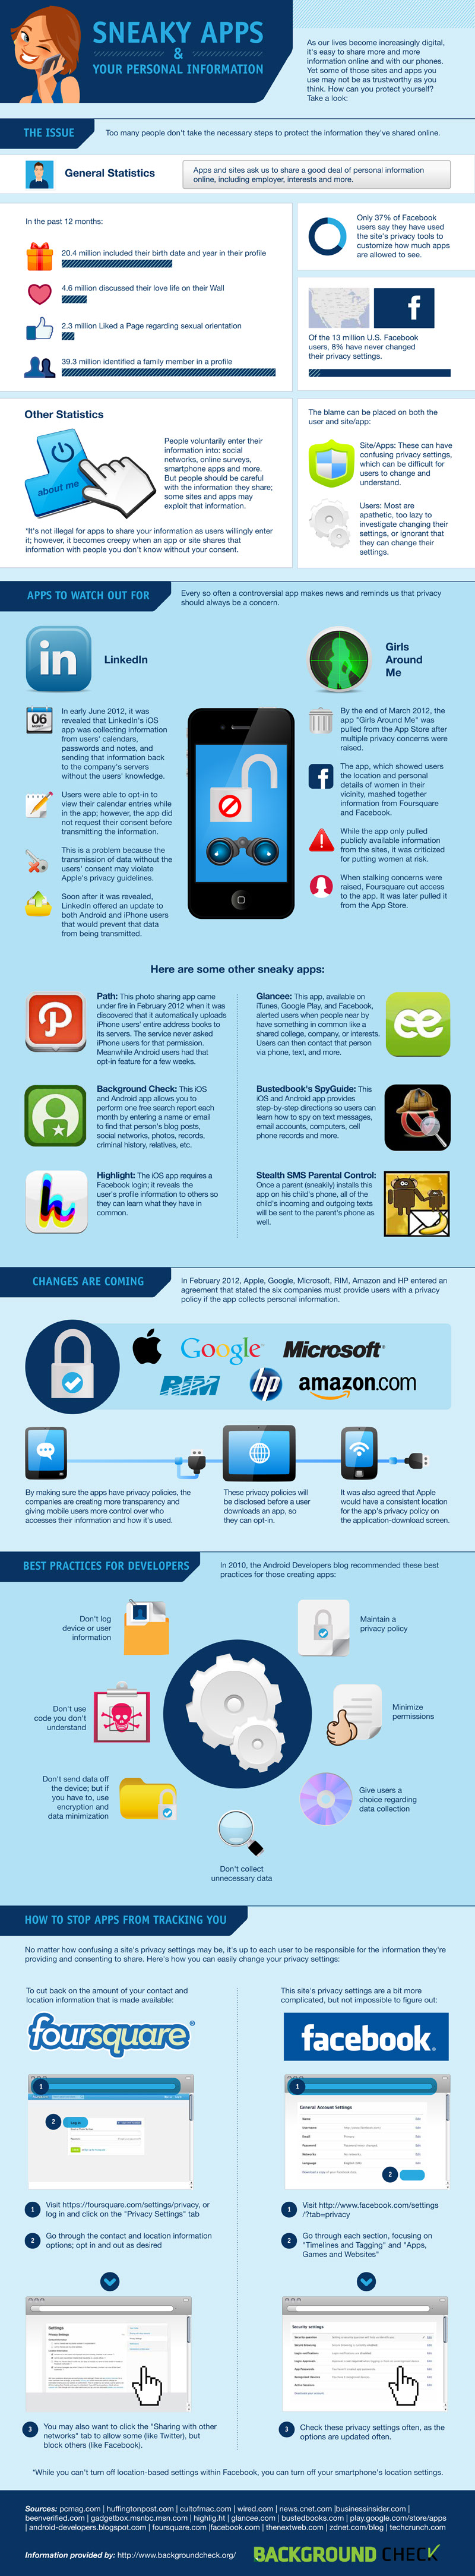 Apps-And-Personal-Information-infographic